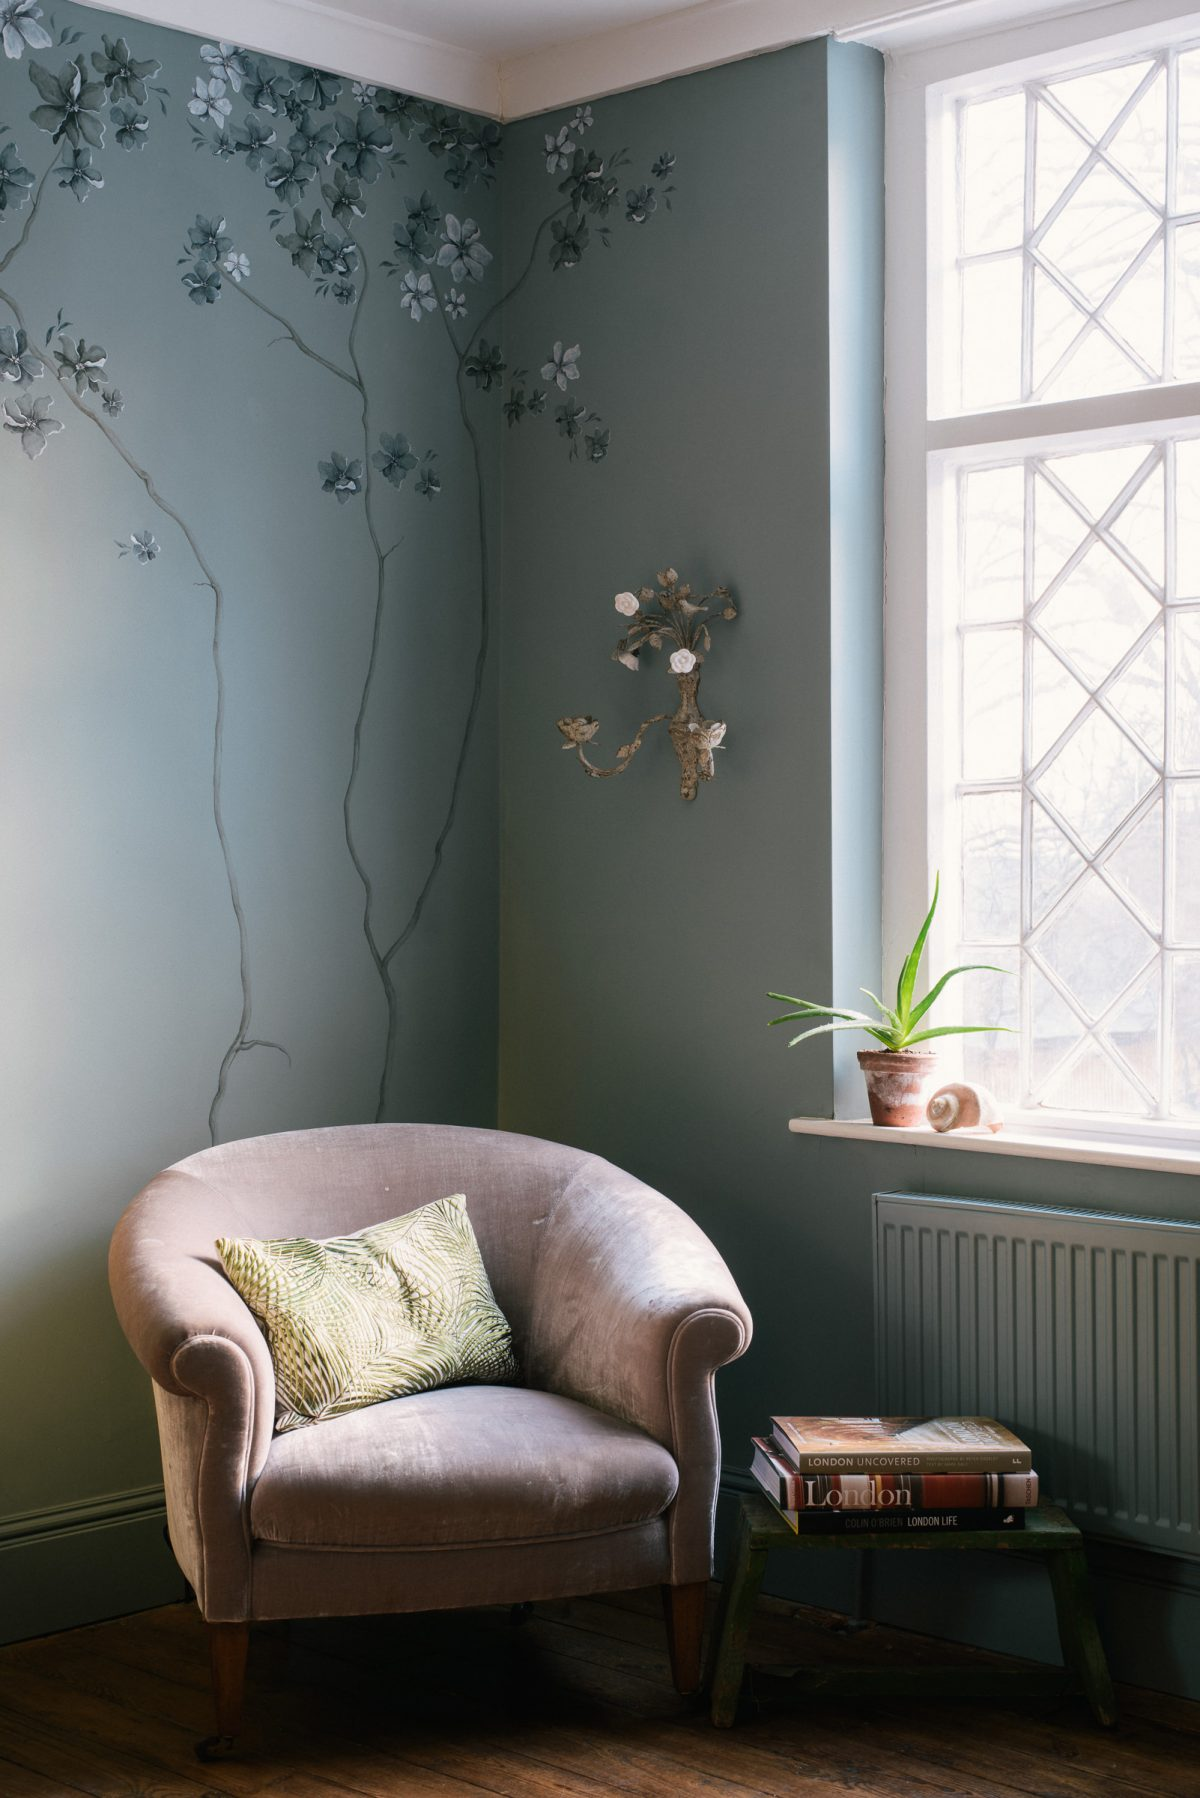 The branches I painted on this wall were very subtle and fitted so nicely behind this old velvet chair.